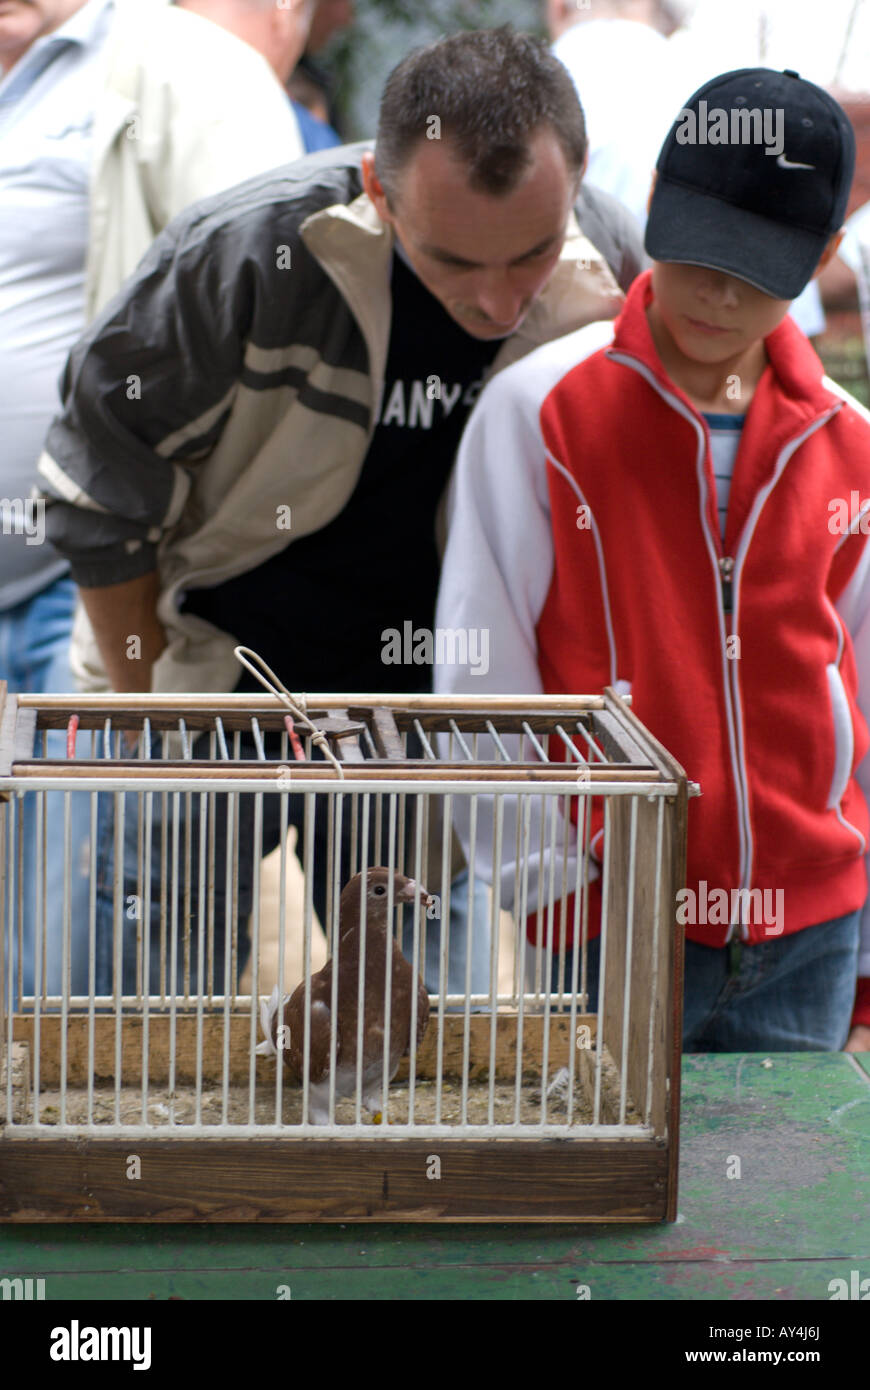 A man and boy looking at a caged racing pigeon for sale at